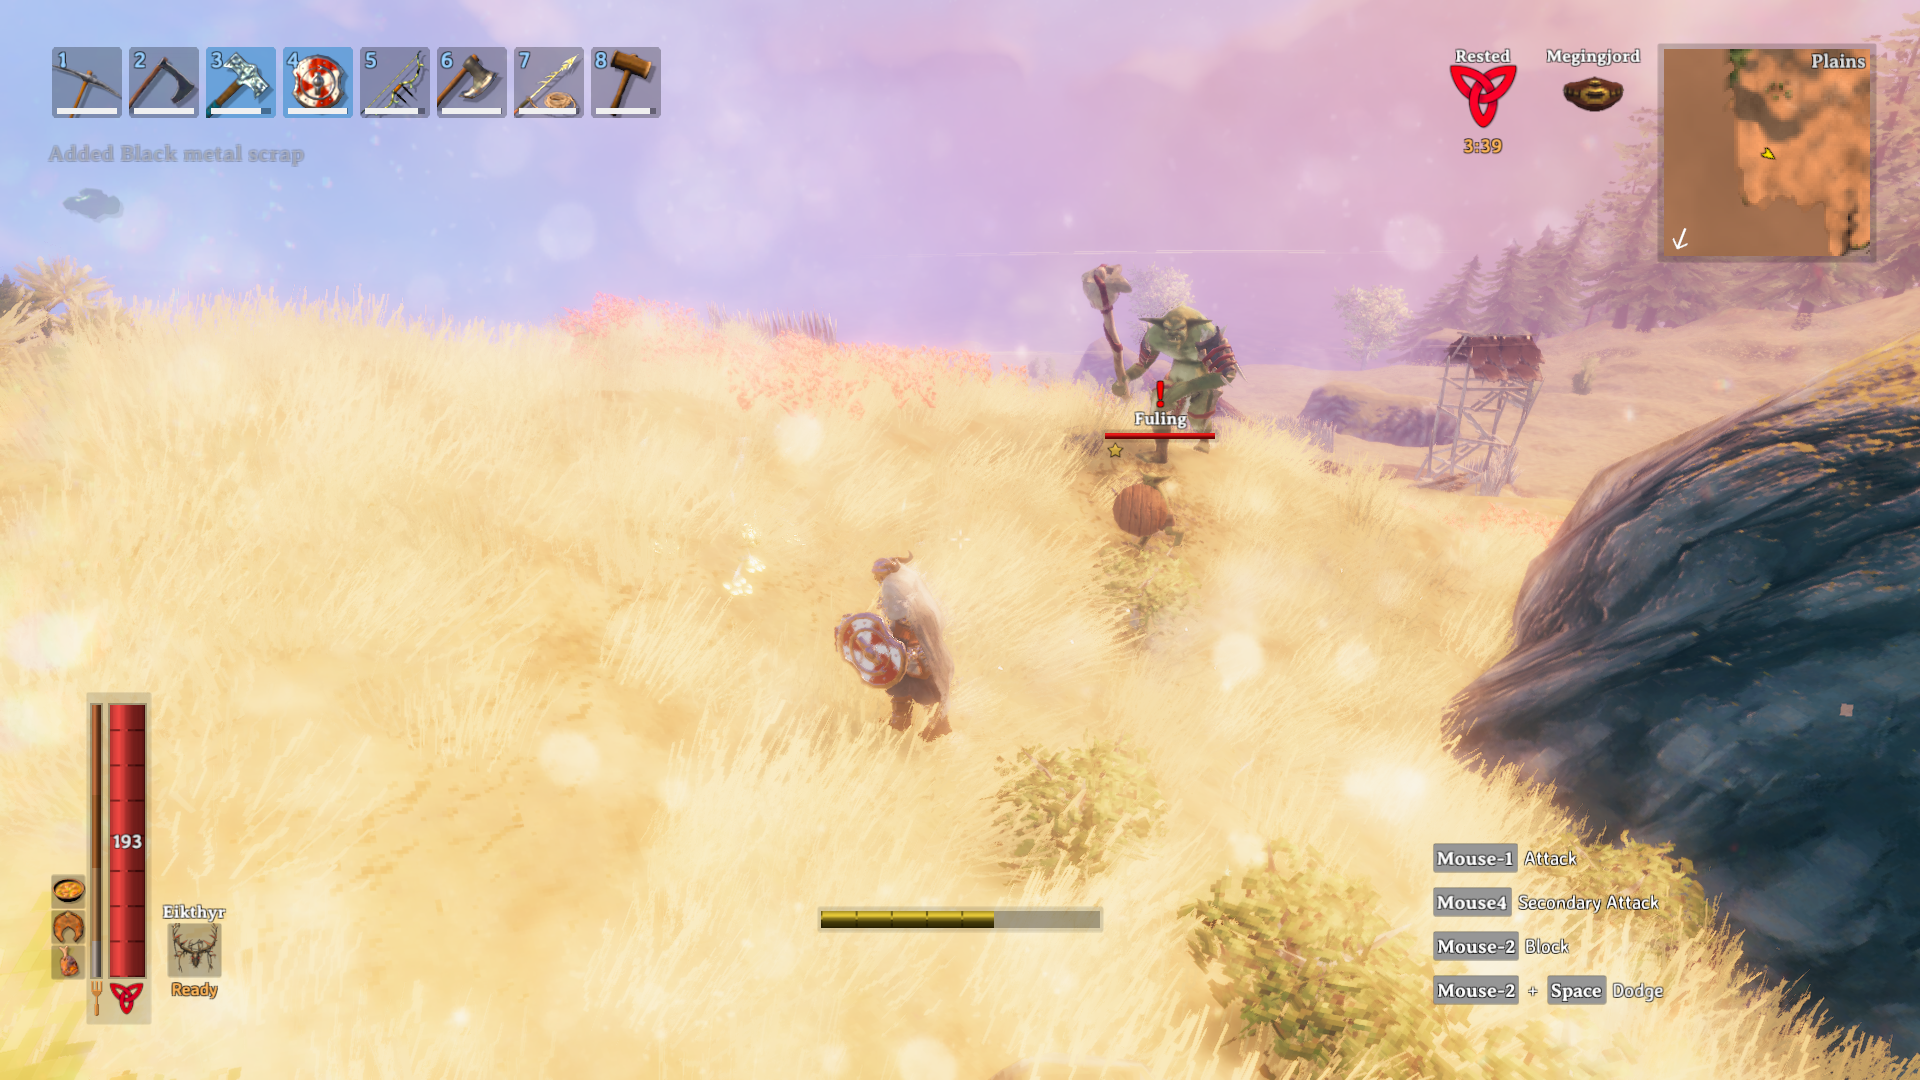 A player being chased by a Fuling and a Fuling Berserker across the Plains biome in Valheim